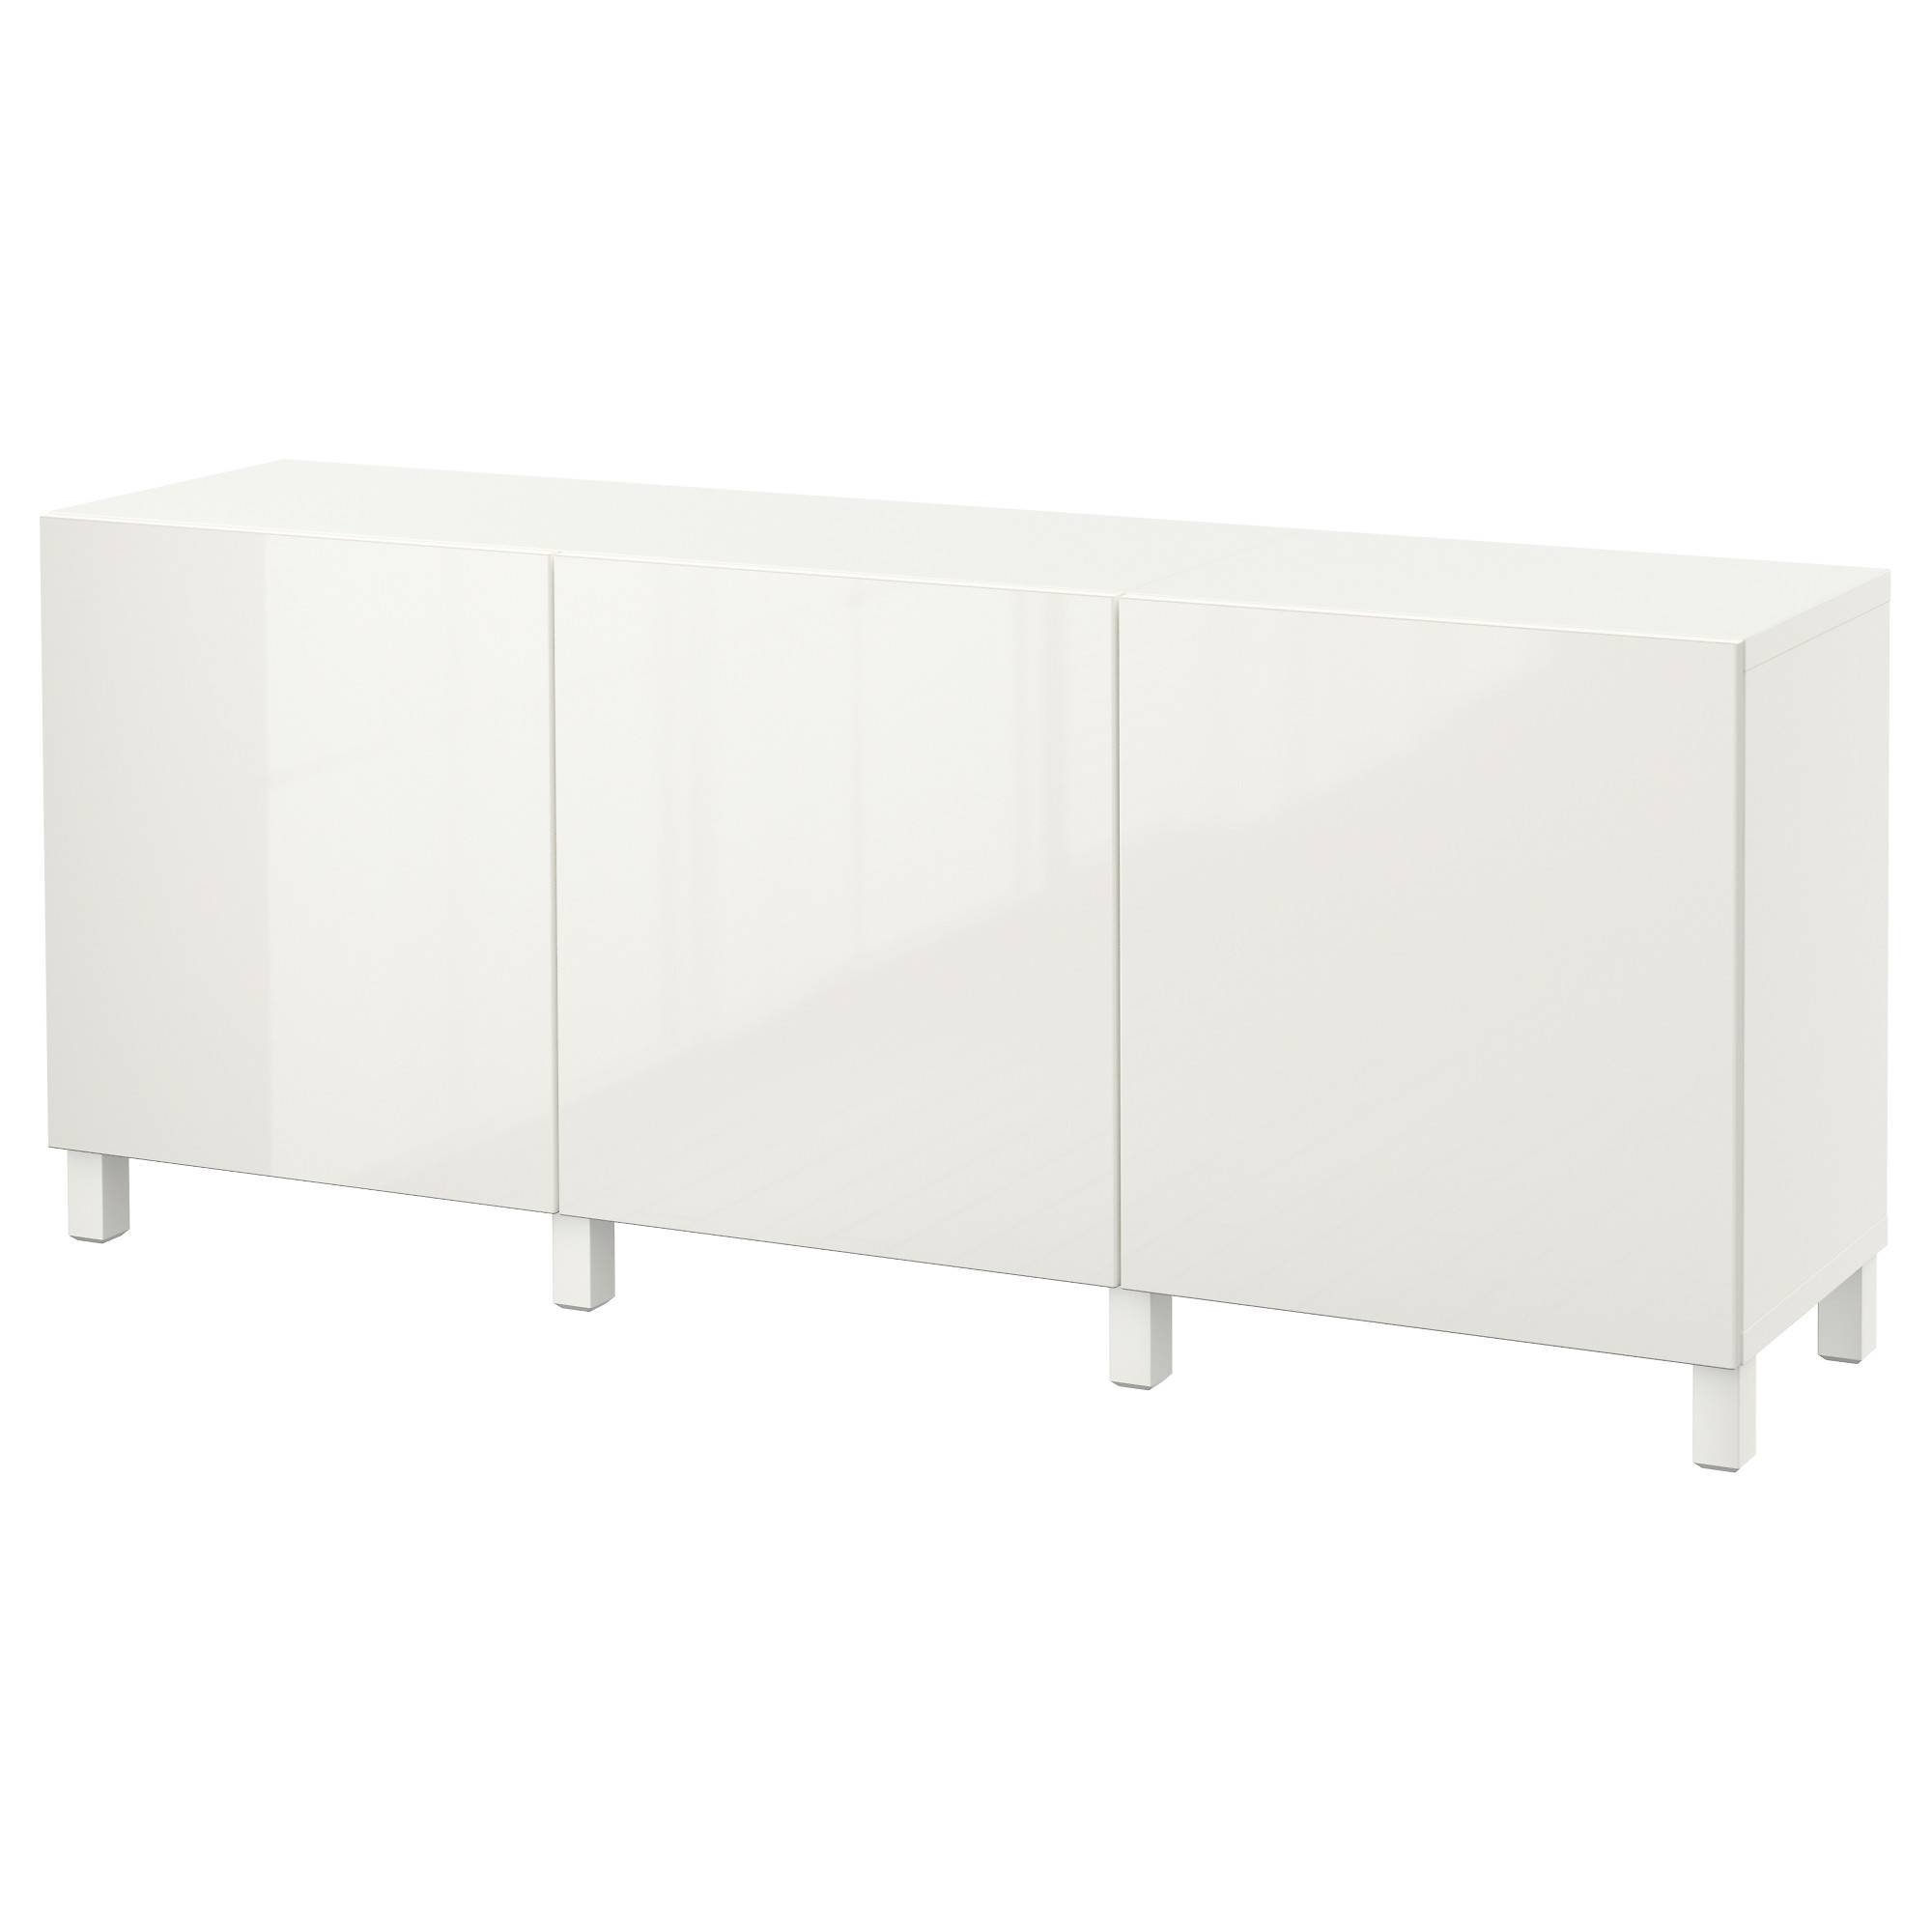 Bestå Storage Combination With Doors - White/selsviken High-Gloss throughout Ready Made Sideboards (Image 13 of 30)